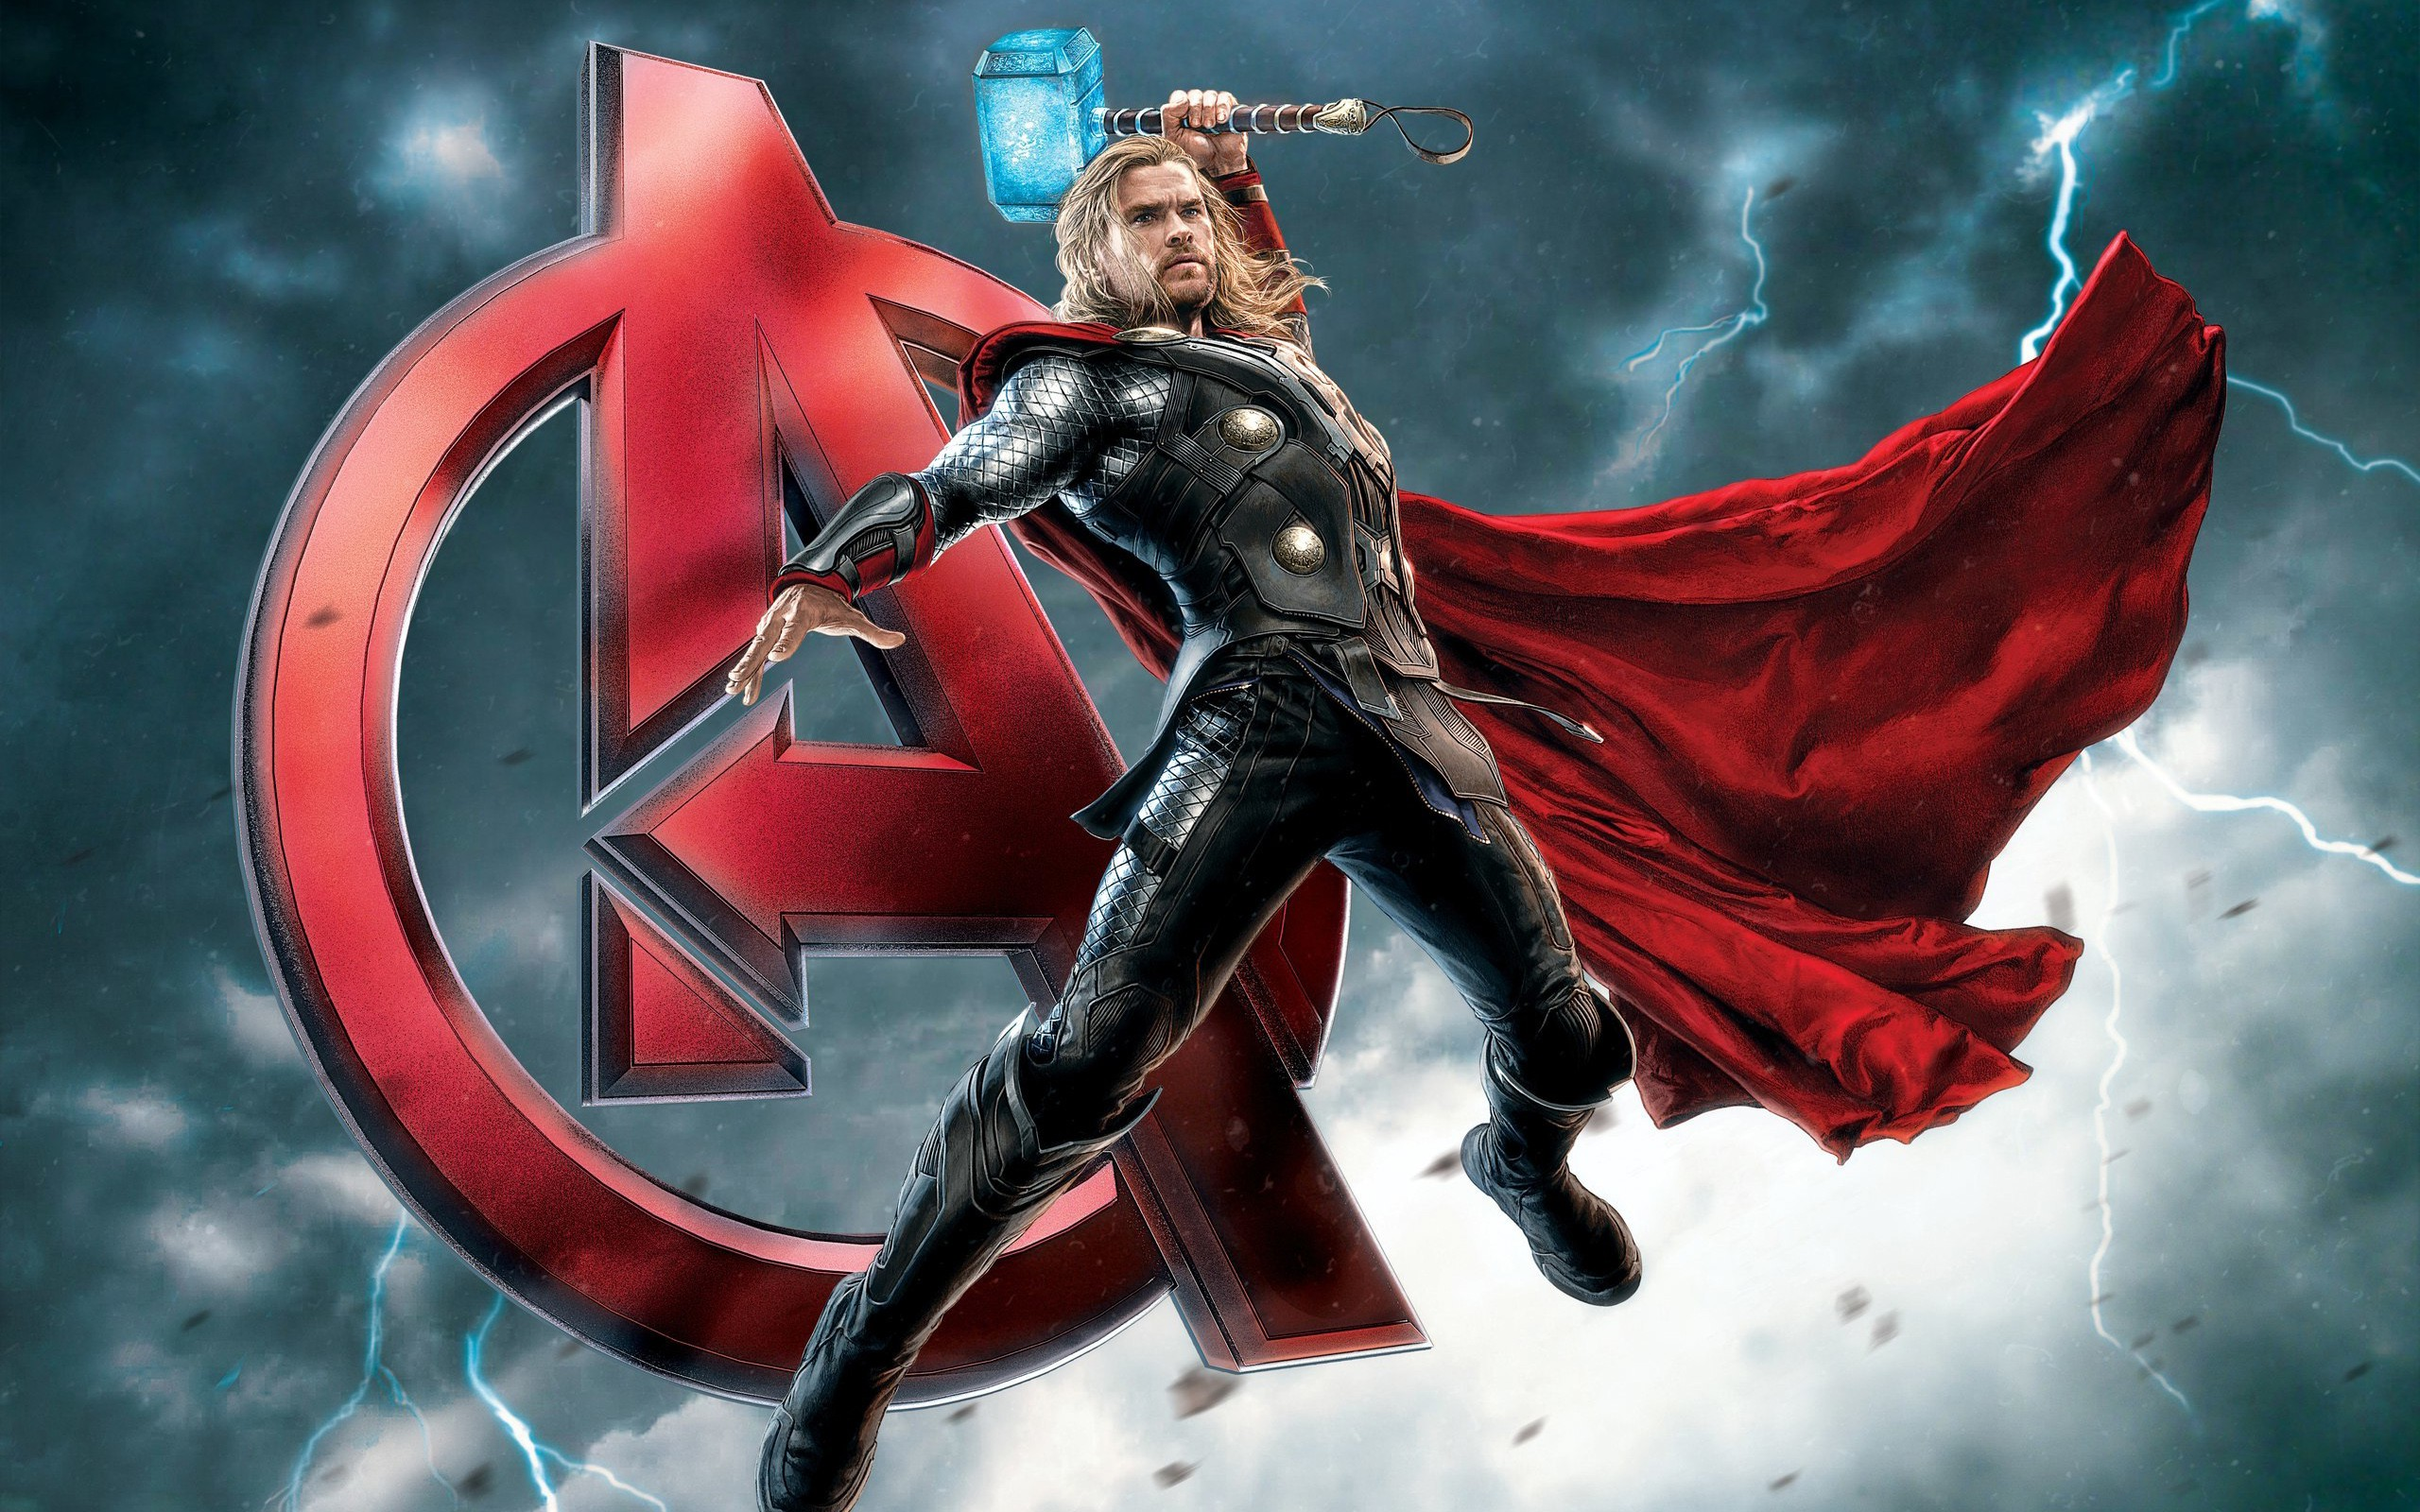 3d Thor Ragnarok Android Wallpaper Thor Avengers Hd Movies 4k Wallpapers Images